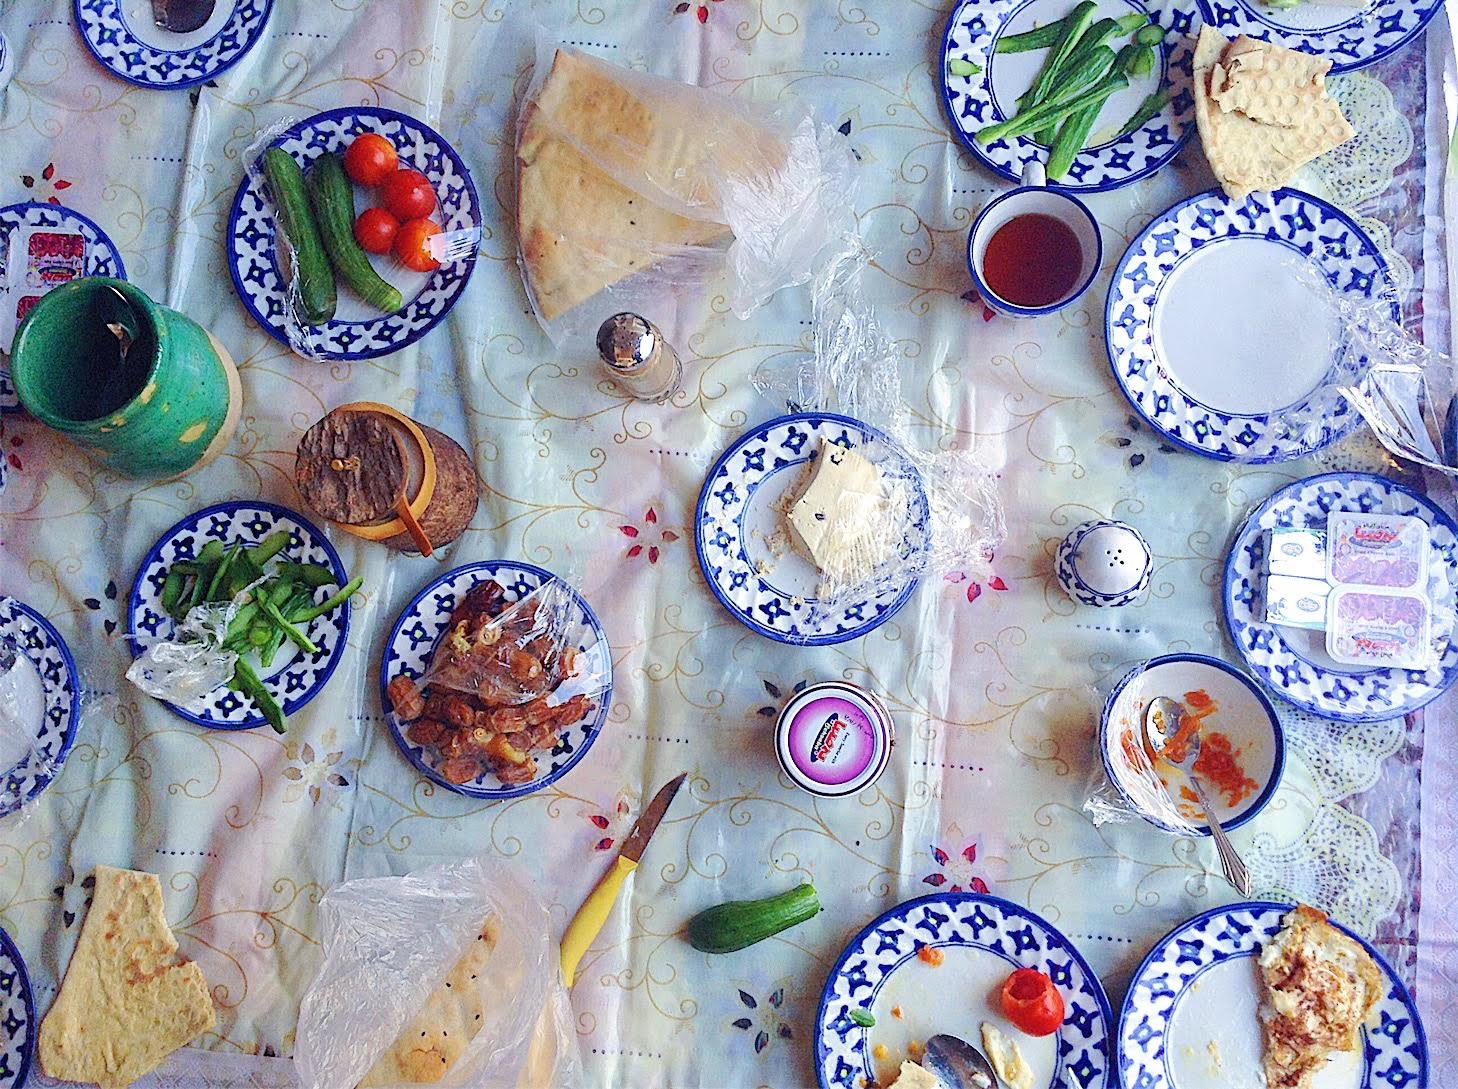 Delicious Persian breakfast at Barandaz Lodge in Mesr, Iran. Eggs with cinammon, dates, small cucumbers, feta cheese, homemade bread, halwa, carrot jam, sour cherry jam. Seriously, one of the best breakfasts I have eaten in my whole life!